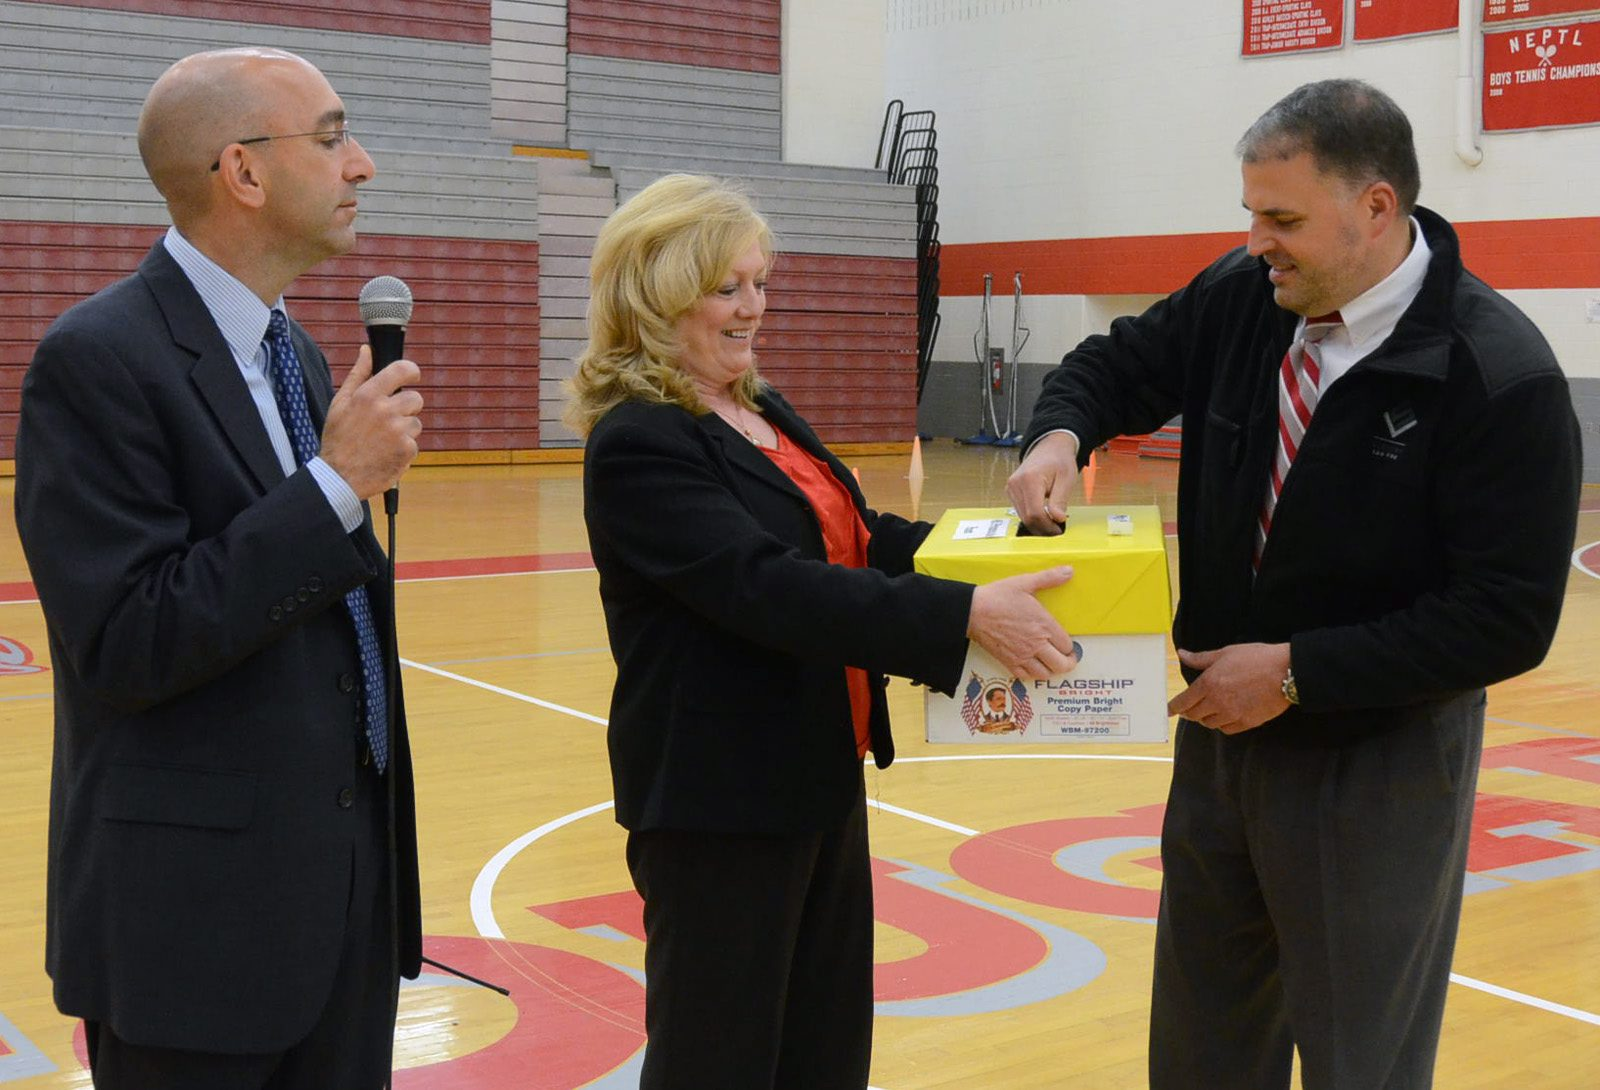 Attorney Christopher Slusser picks a winning name during the Hazleton Area School District's Prom Promise assembly.